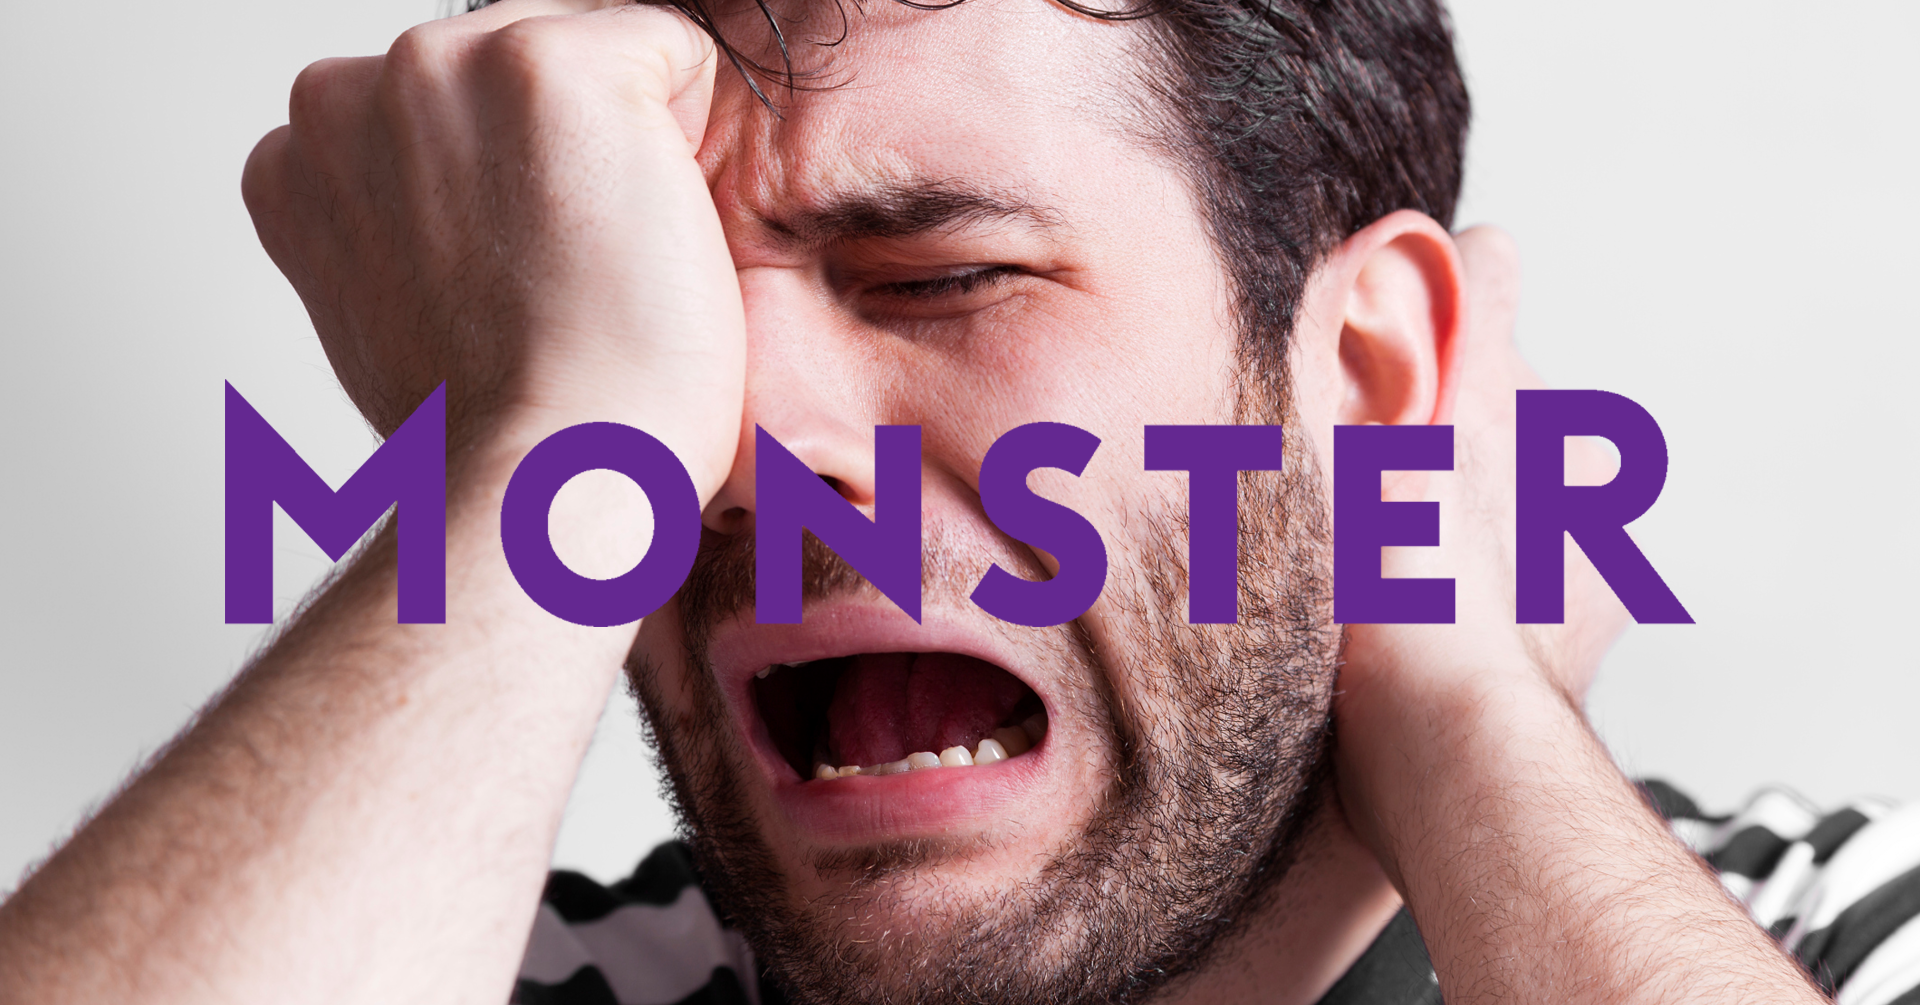 Monster / Weeping